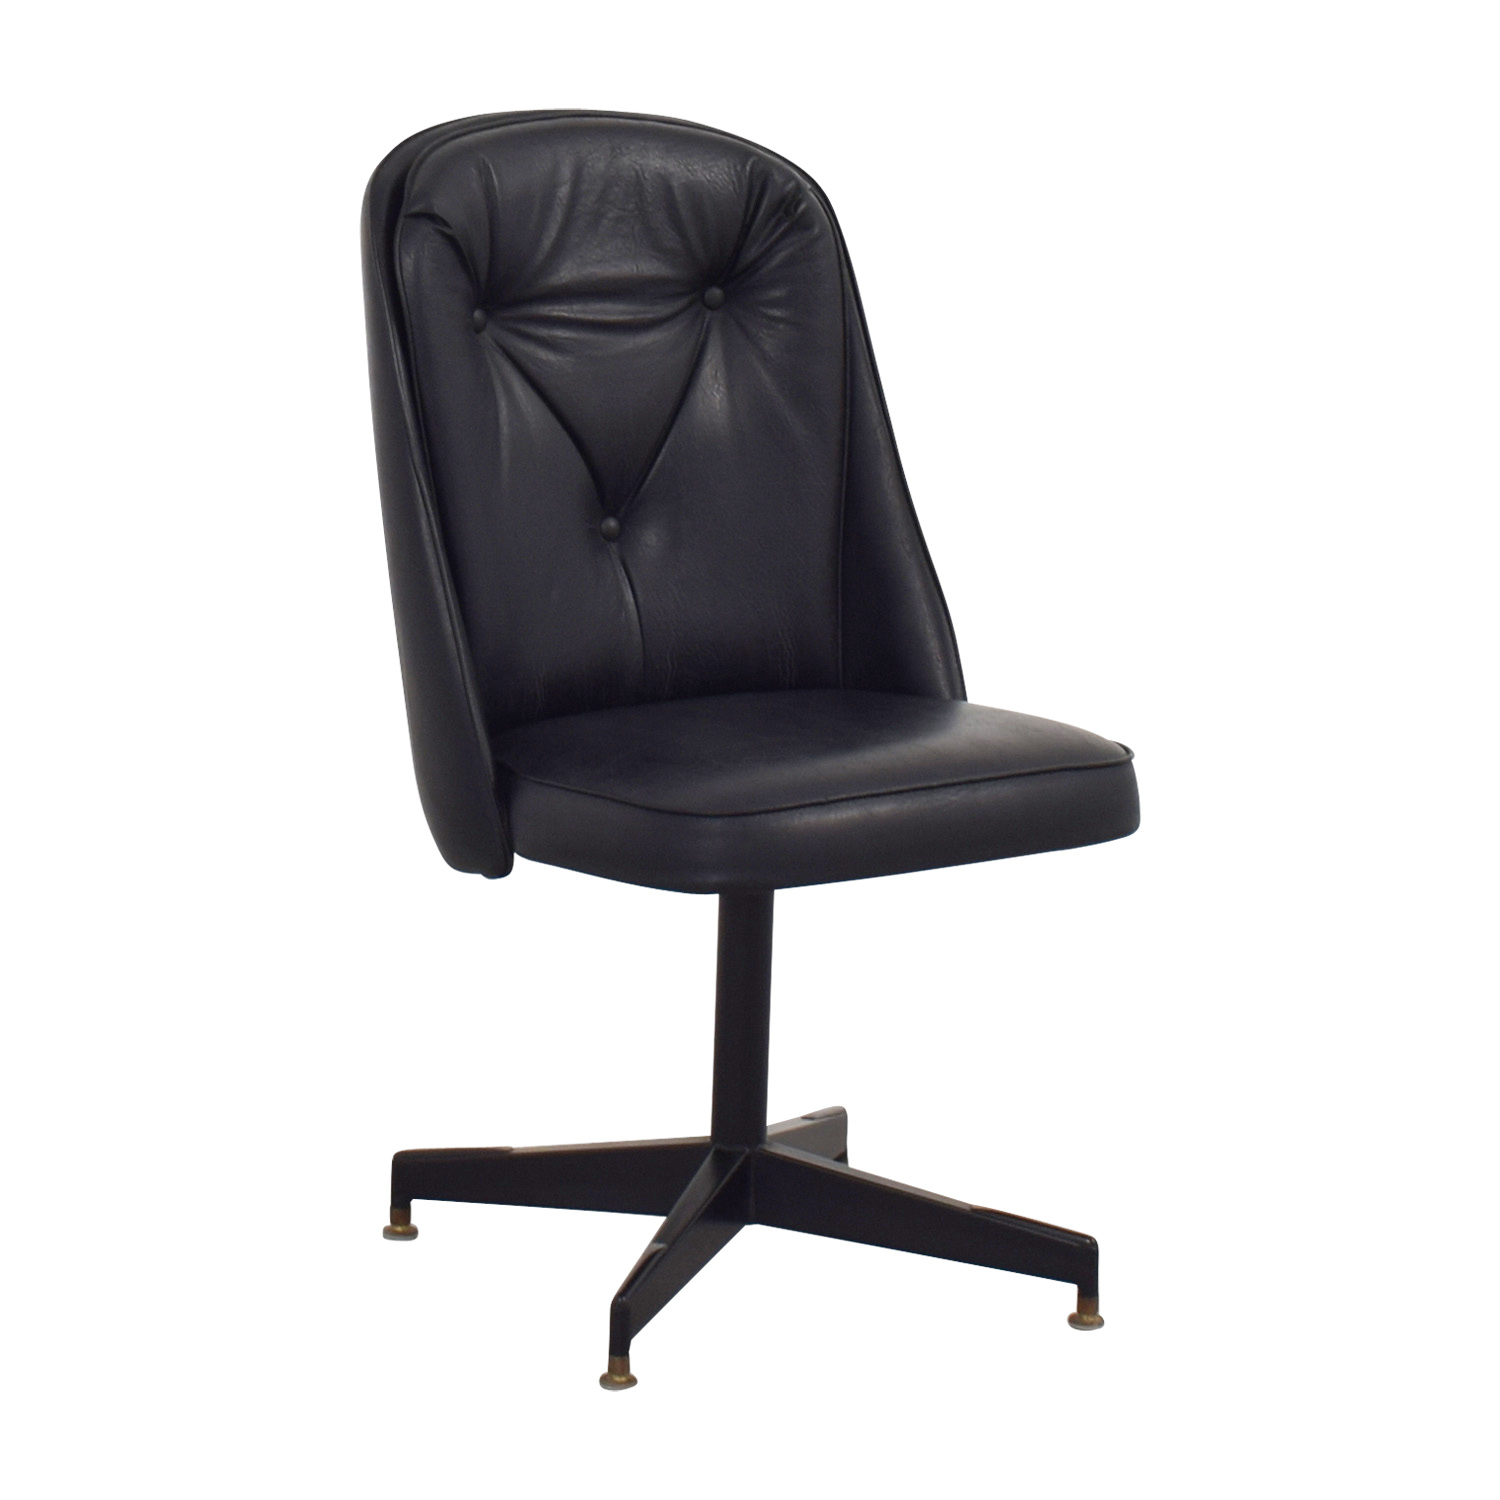 Black Desk Chair 62 Off Black Leather Swivel Office Desk Chair Chairs